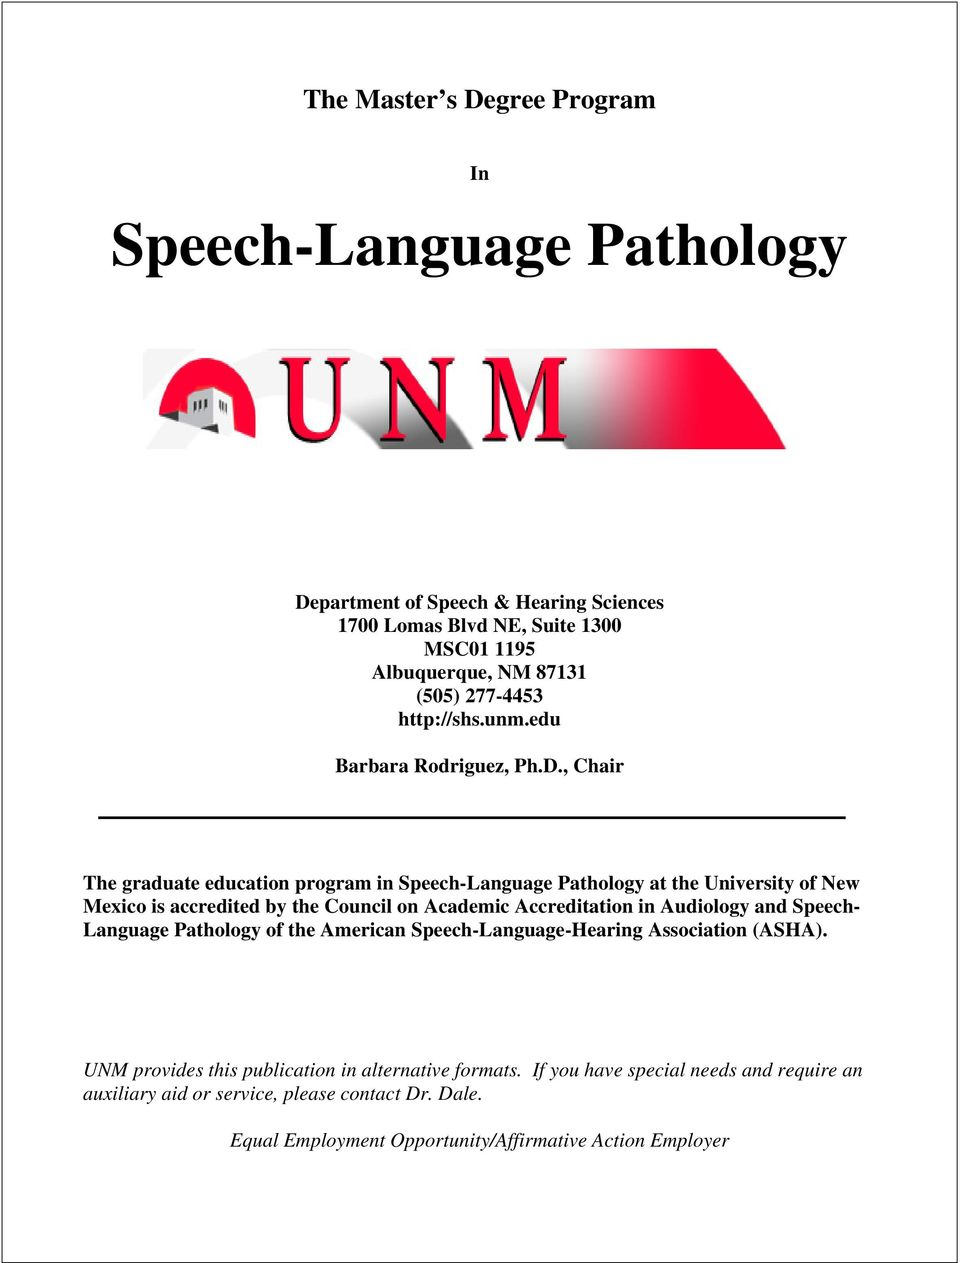 , Chair The graduate education program in Speech-Language Pathology at the University of New Mexico is accredited by the Council on Academic Accreditation in Audiology